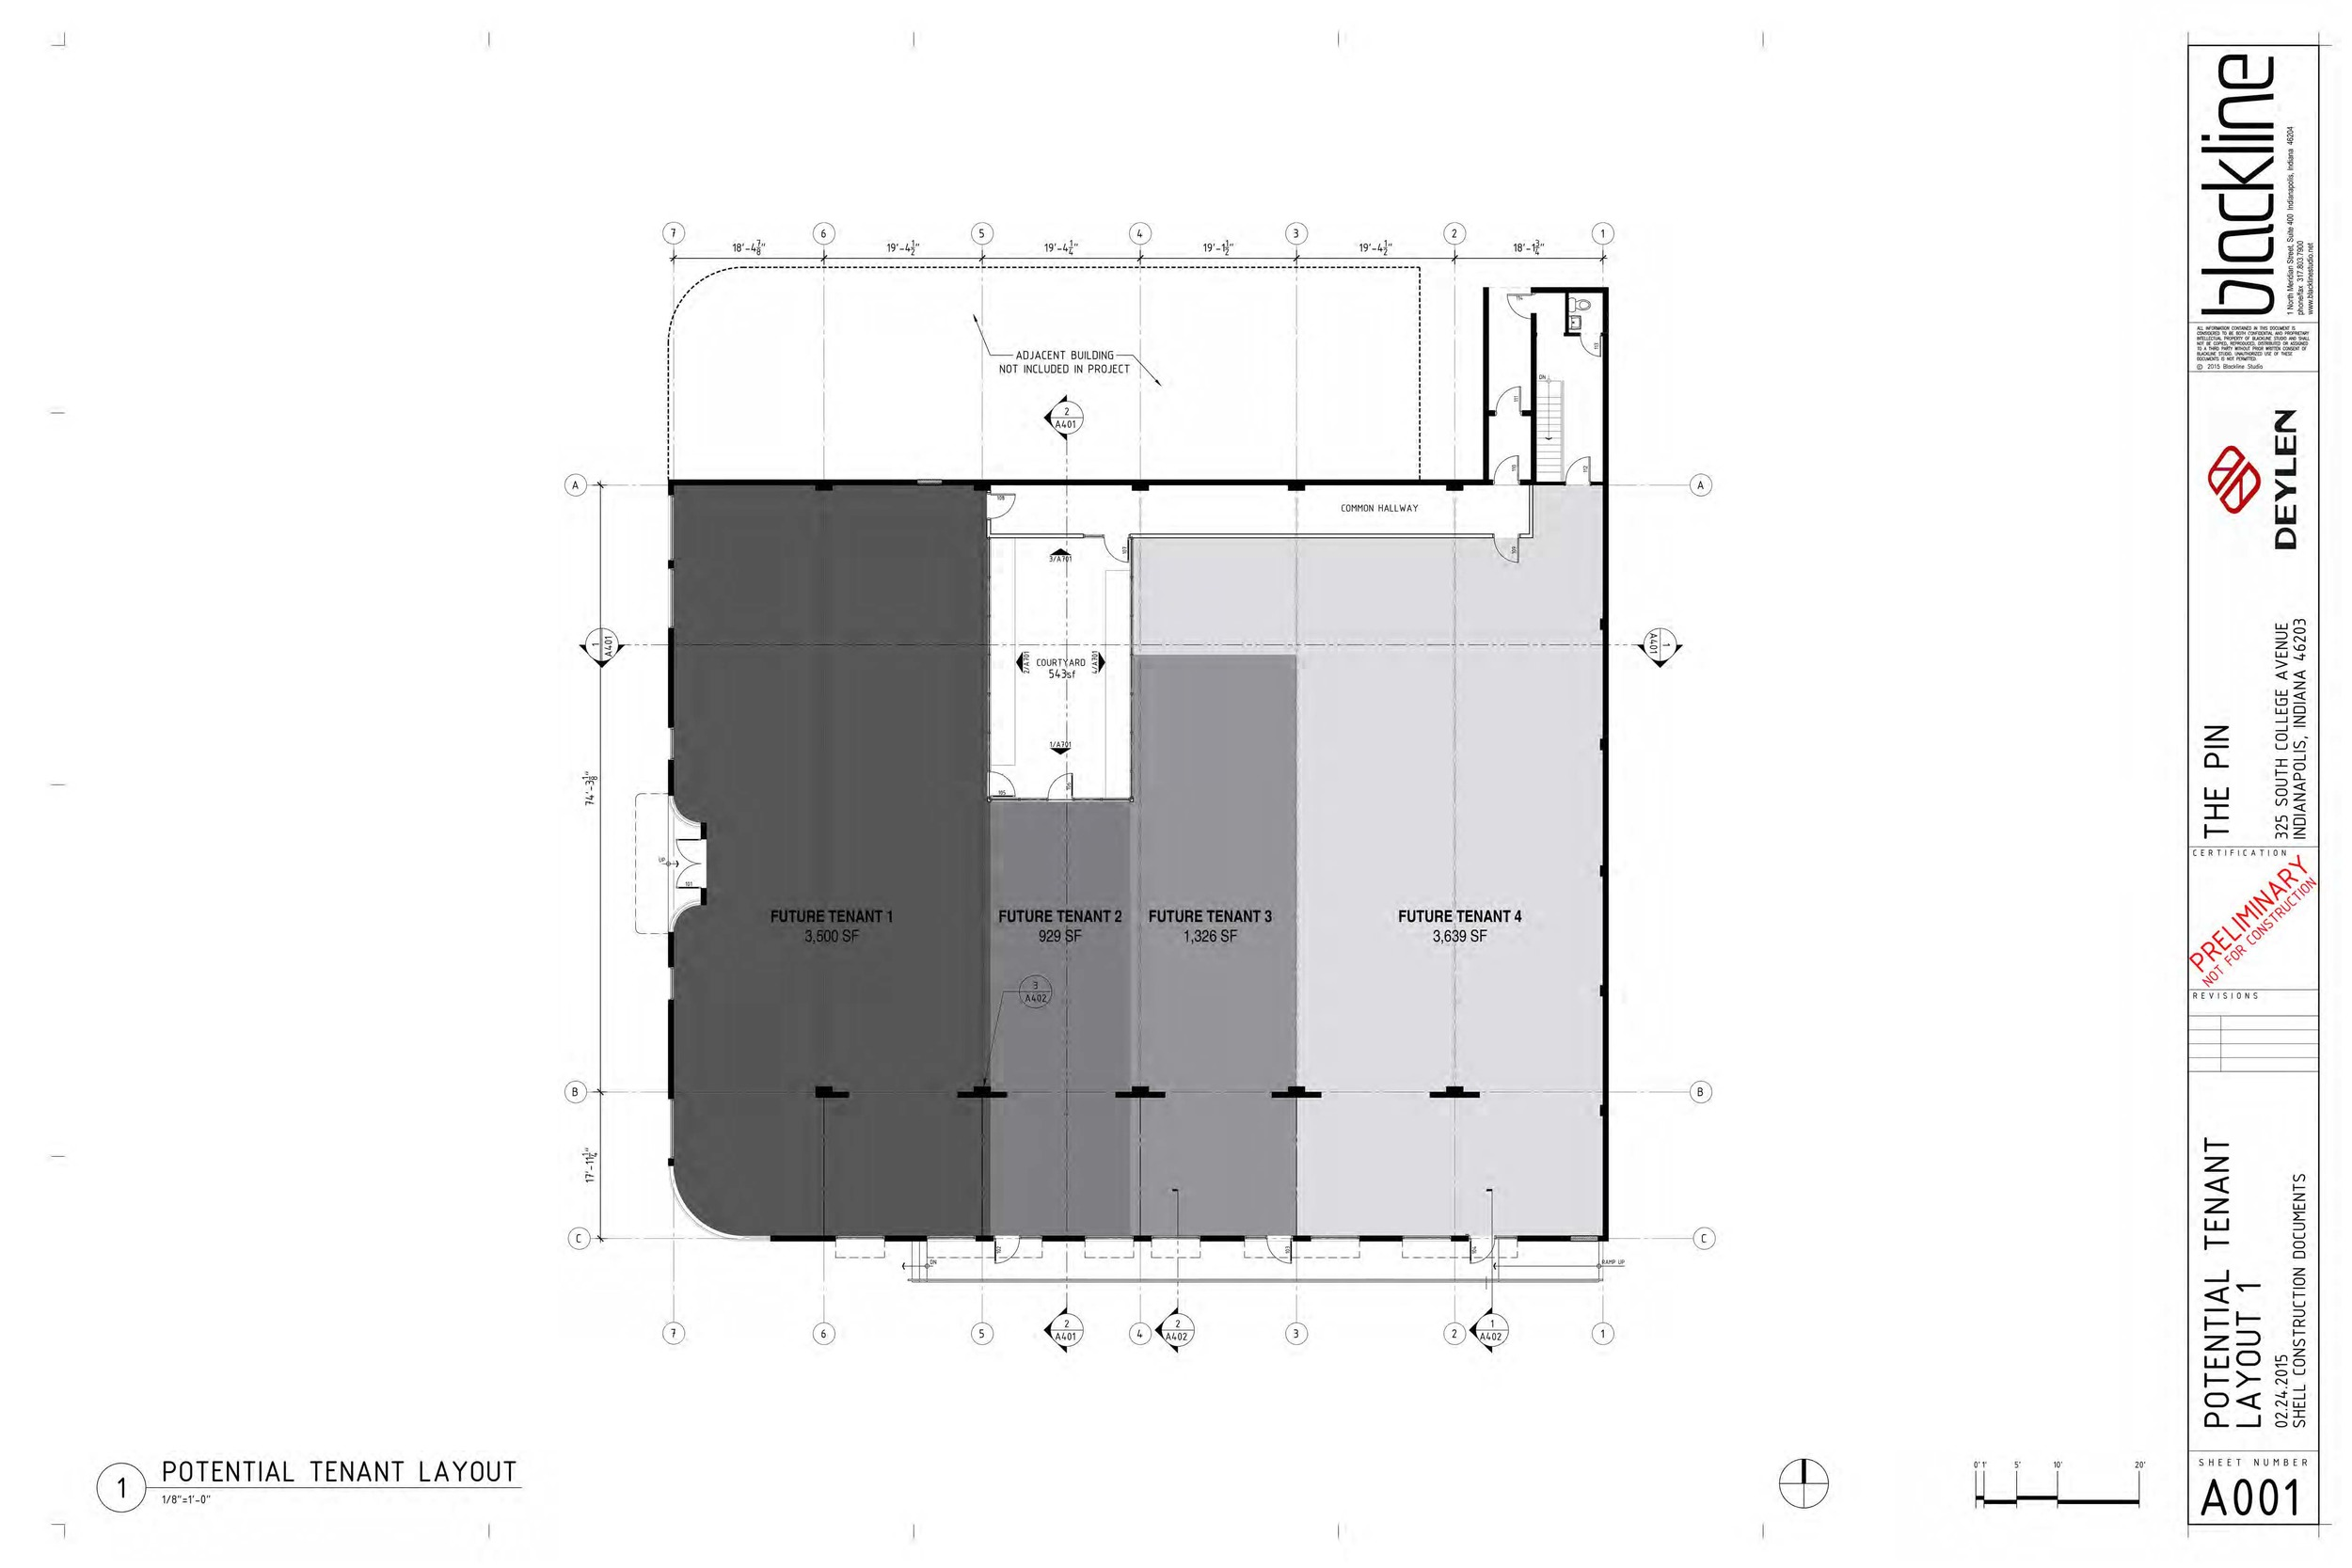 2015 04 14 - Tenant Options_Page_1.jpg